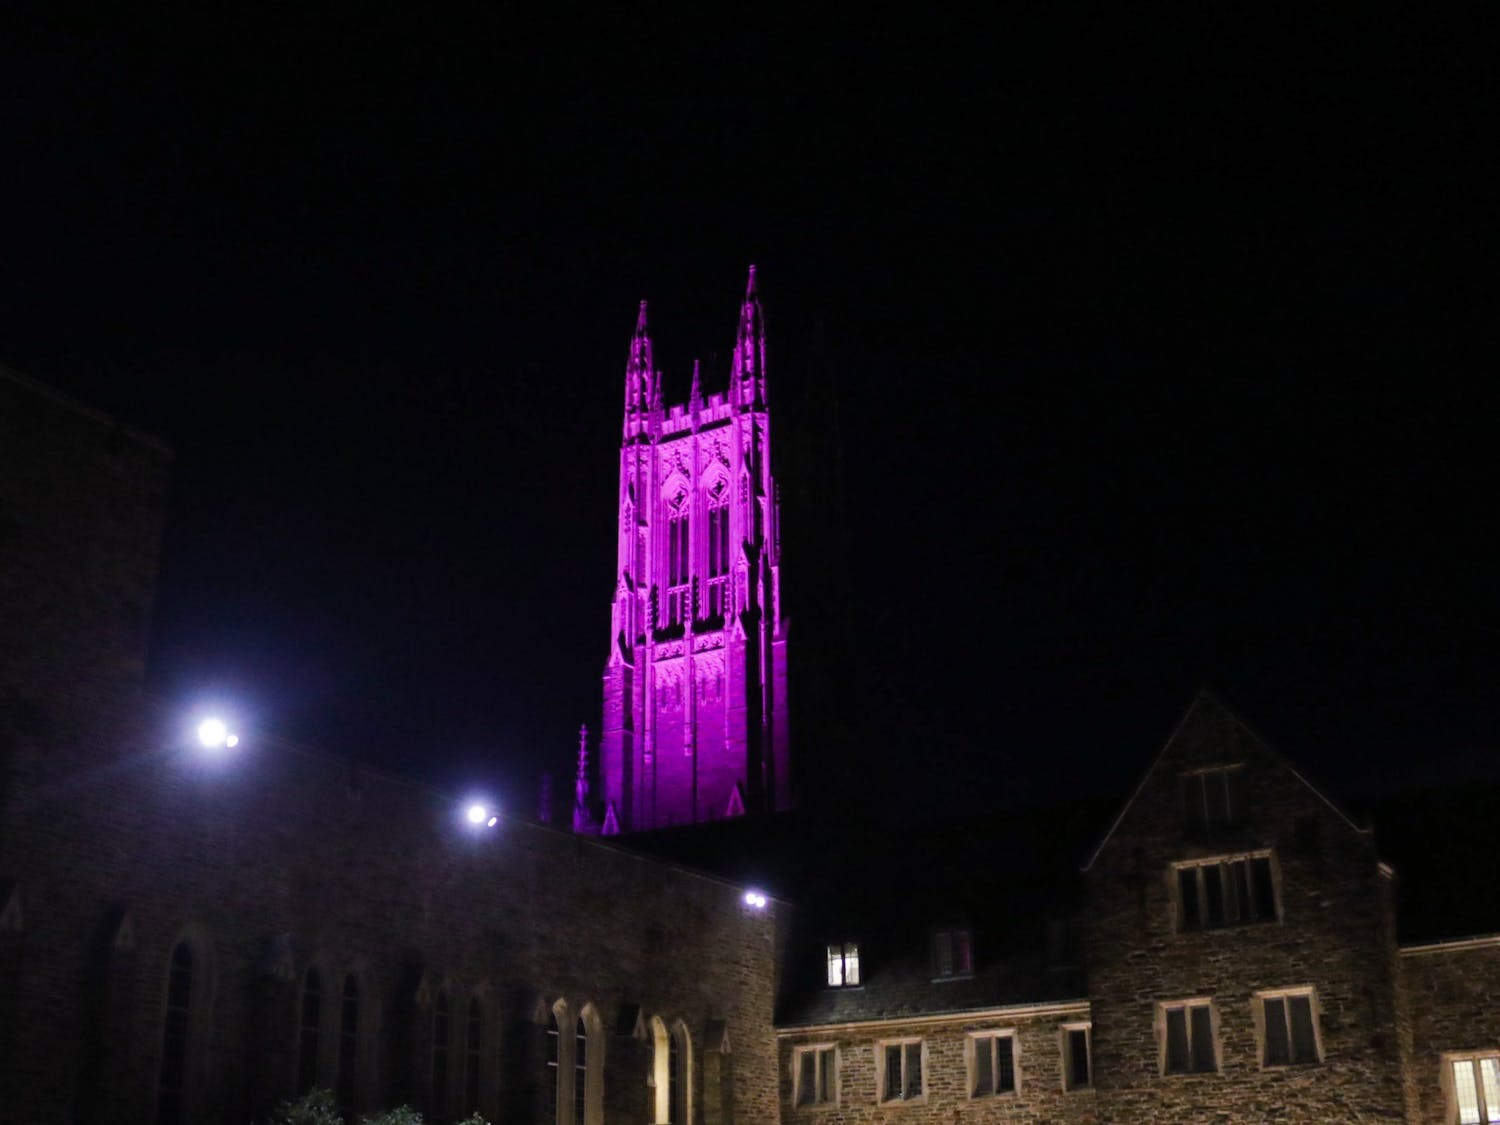 Duke Chapel was lit up bright pink for the past month, generating speculation as to the meaning behind the color.